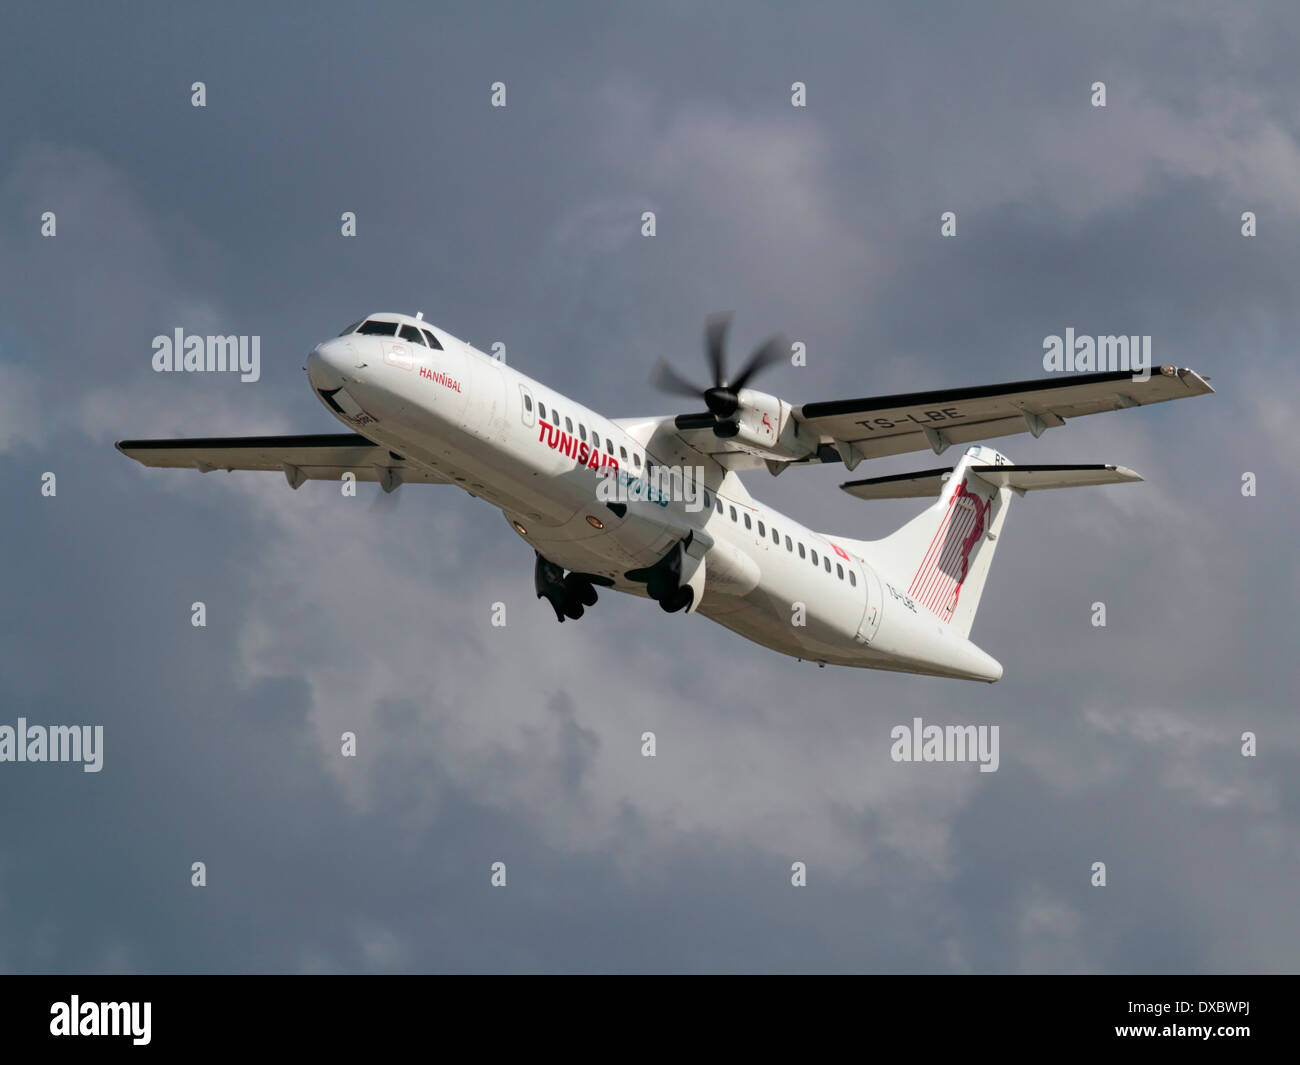 Short haul air travel. Tunisair Express ATR 72-500 turboprop regional airliner taking off - Stock Image